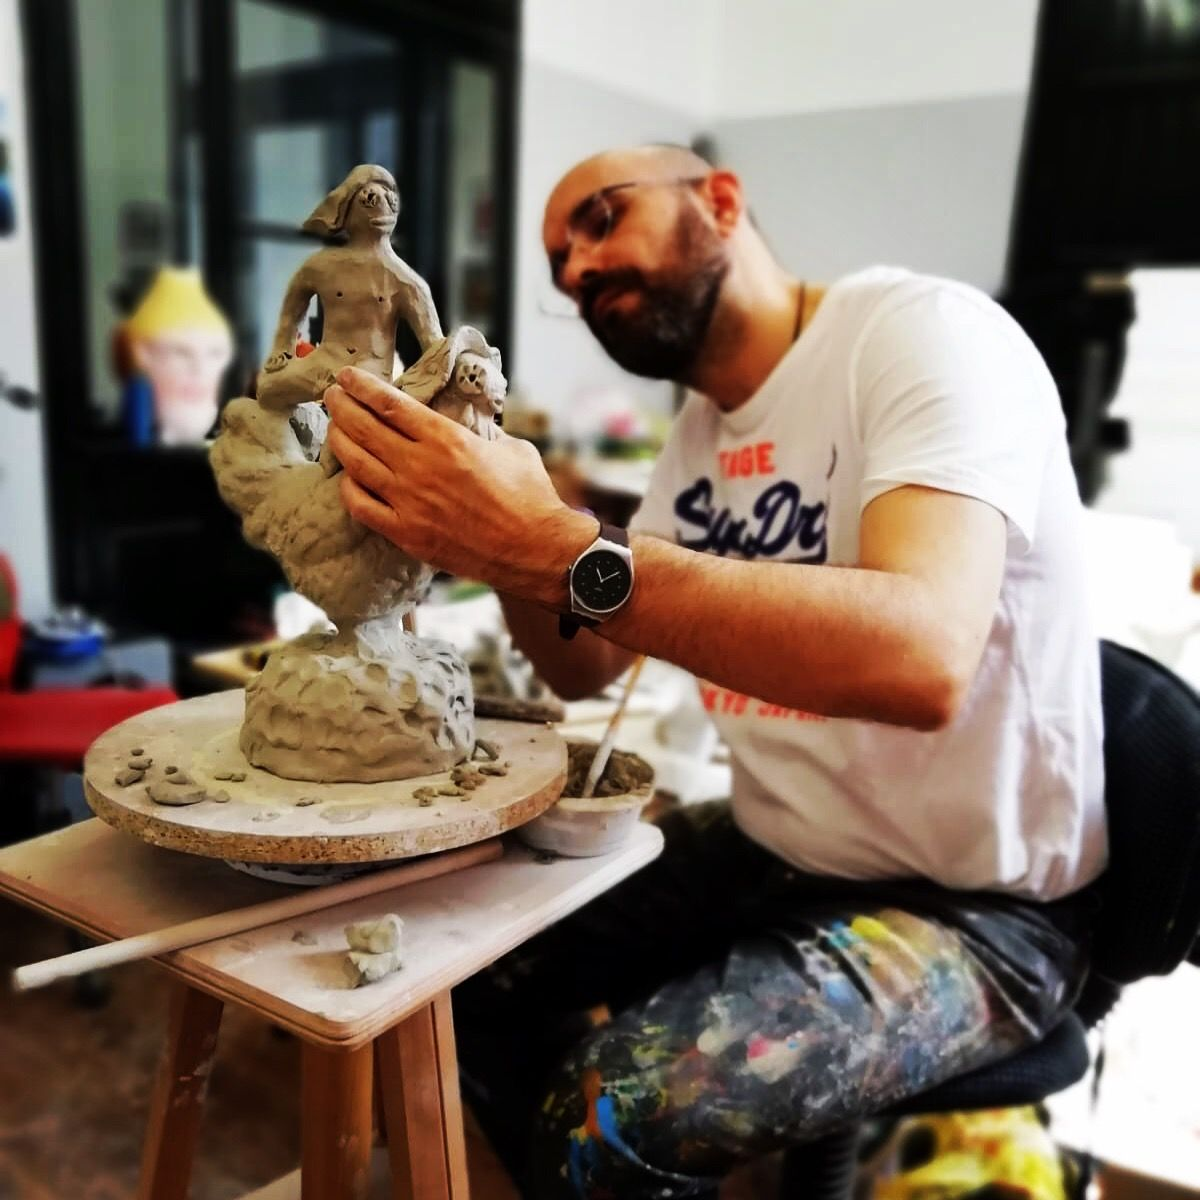 Artist working at his studio